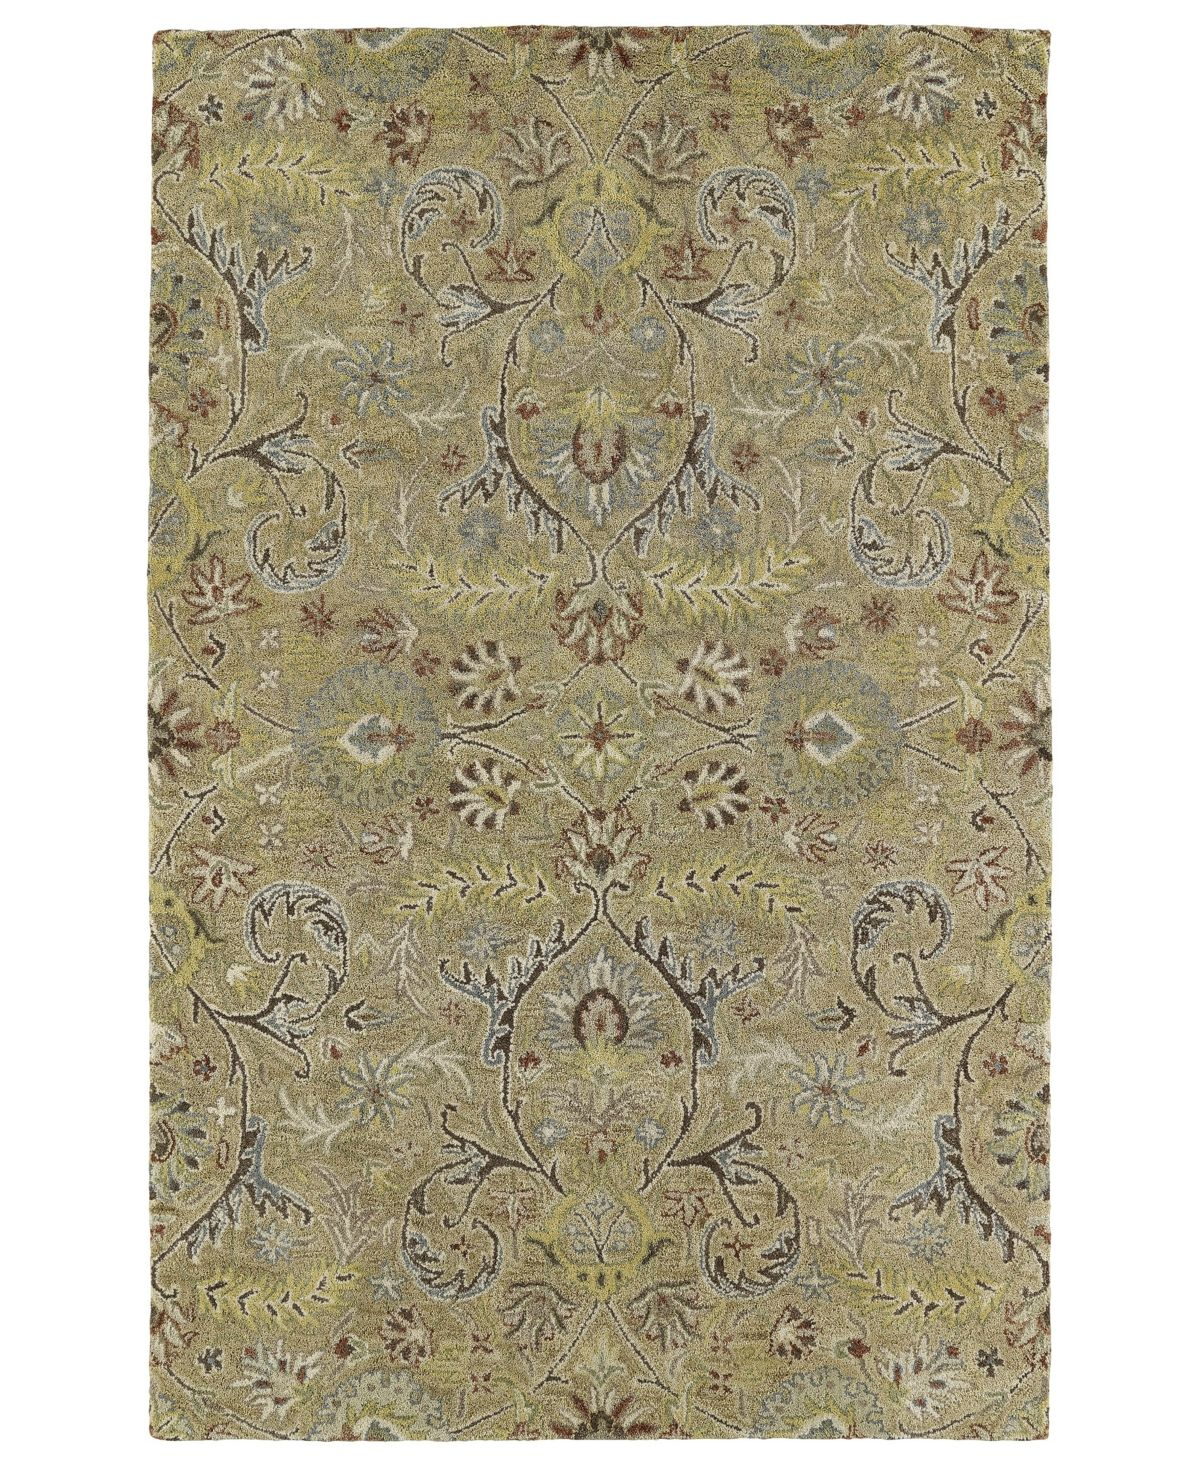 Kaleen Helena Athena 00 Gold 10 X 14 Area Rug Reviews Furniture Macy S Hand Tufted Rugs Rugs Online Style Grace